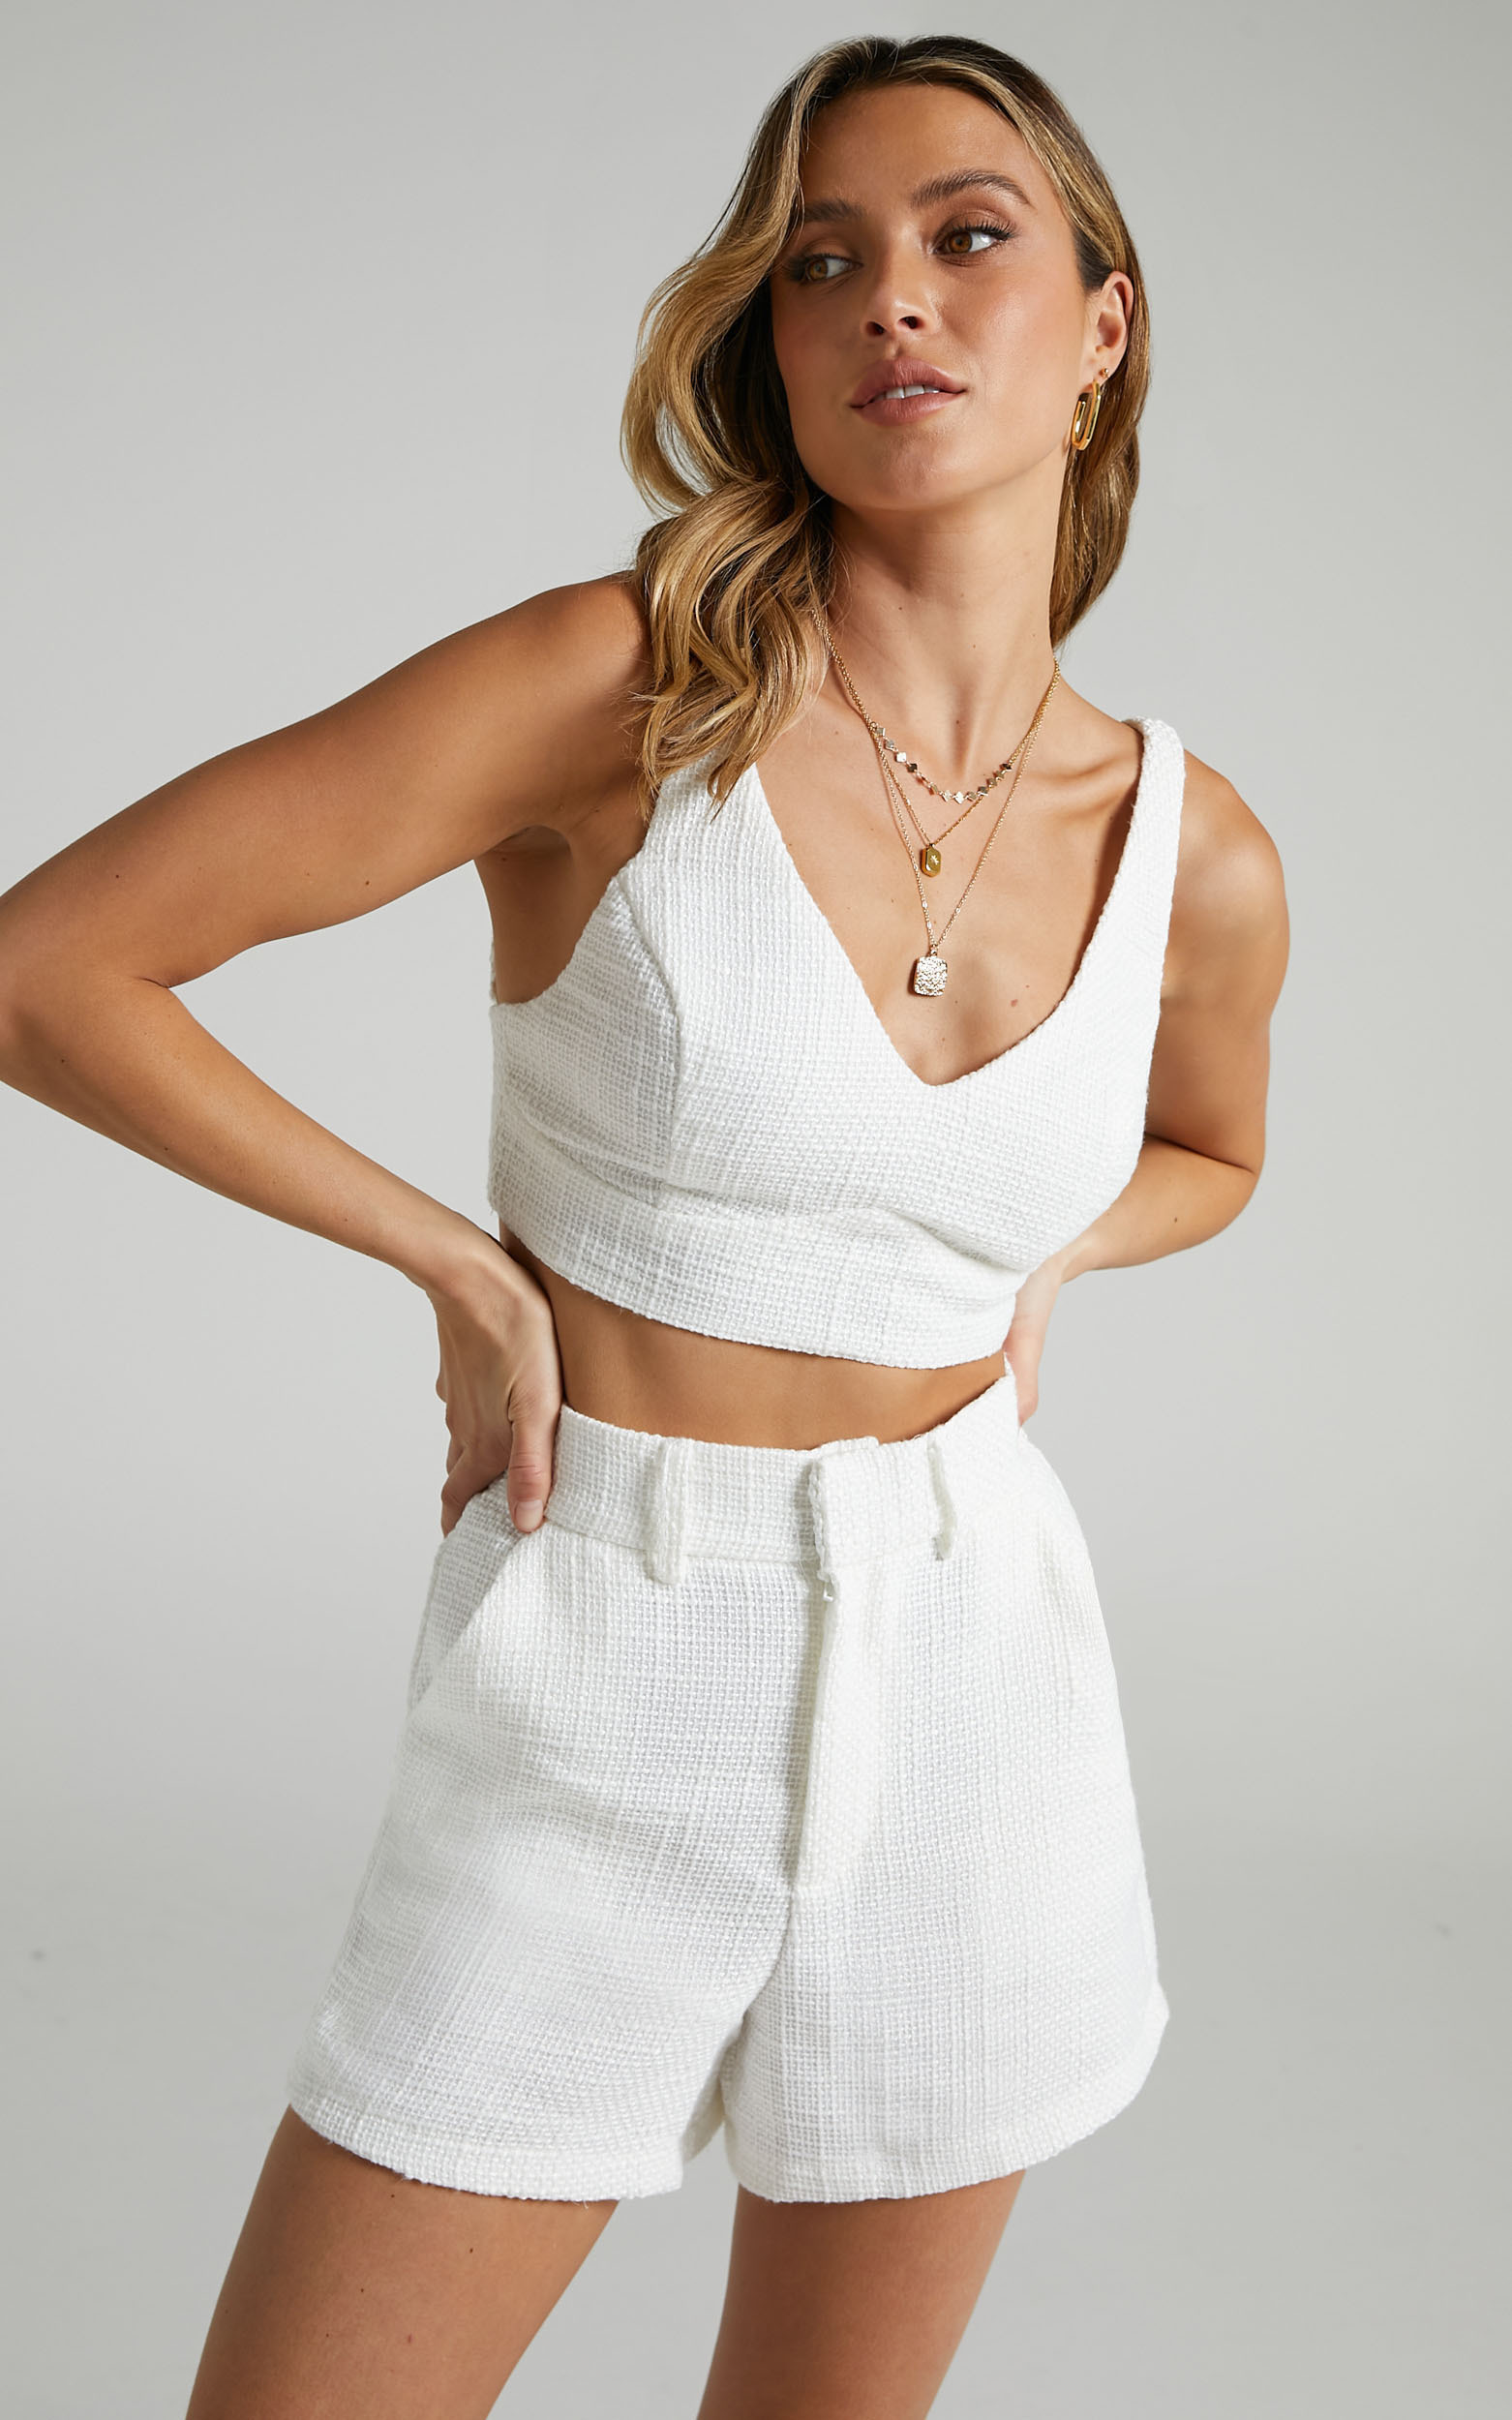 Melbourne Twill Two Piece Short Set in White - 06, WHT3, hi-res image number null